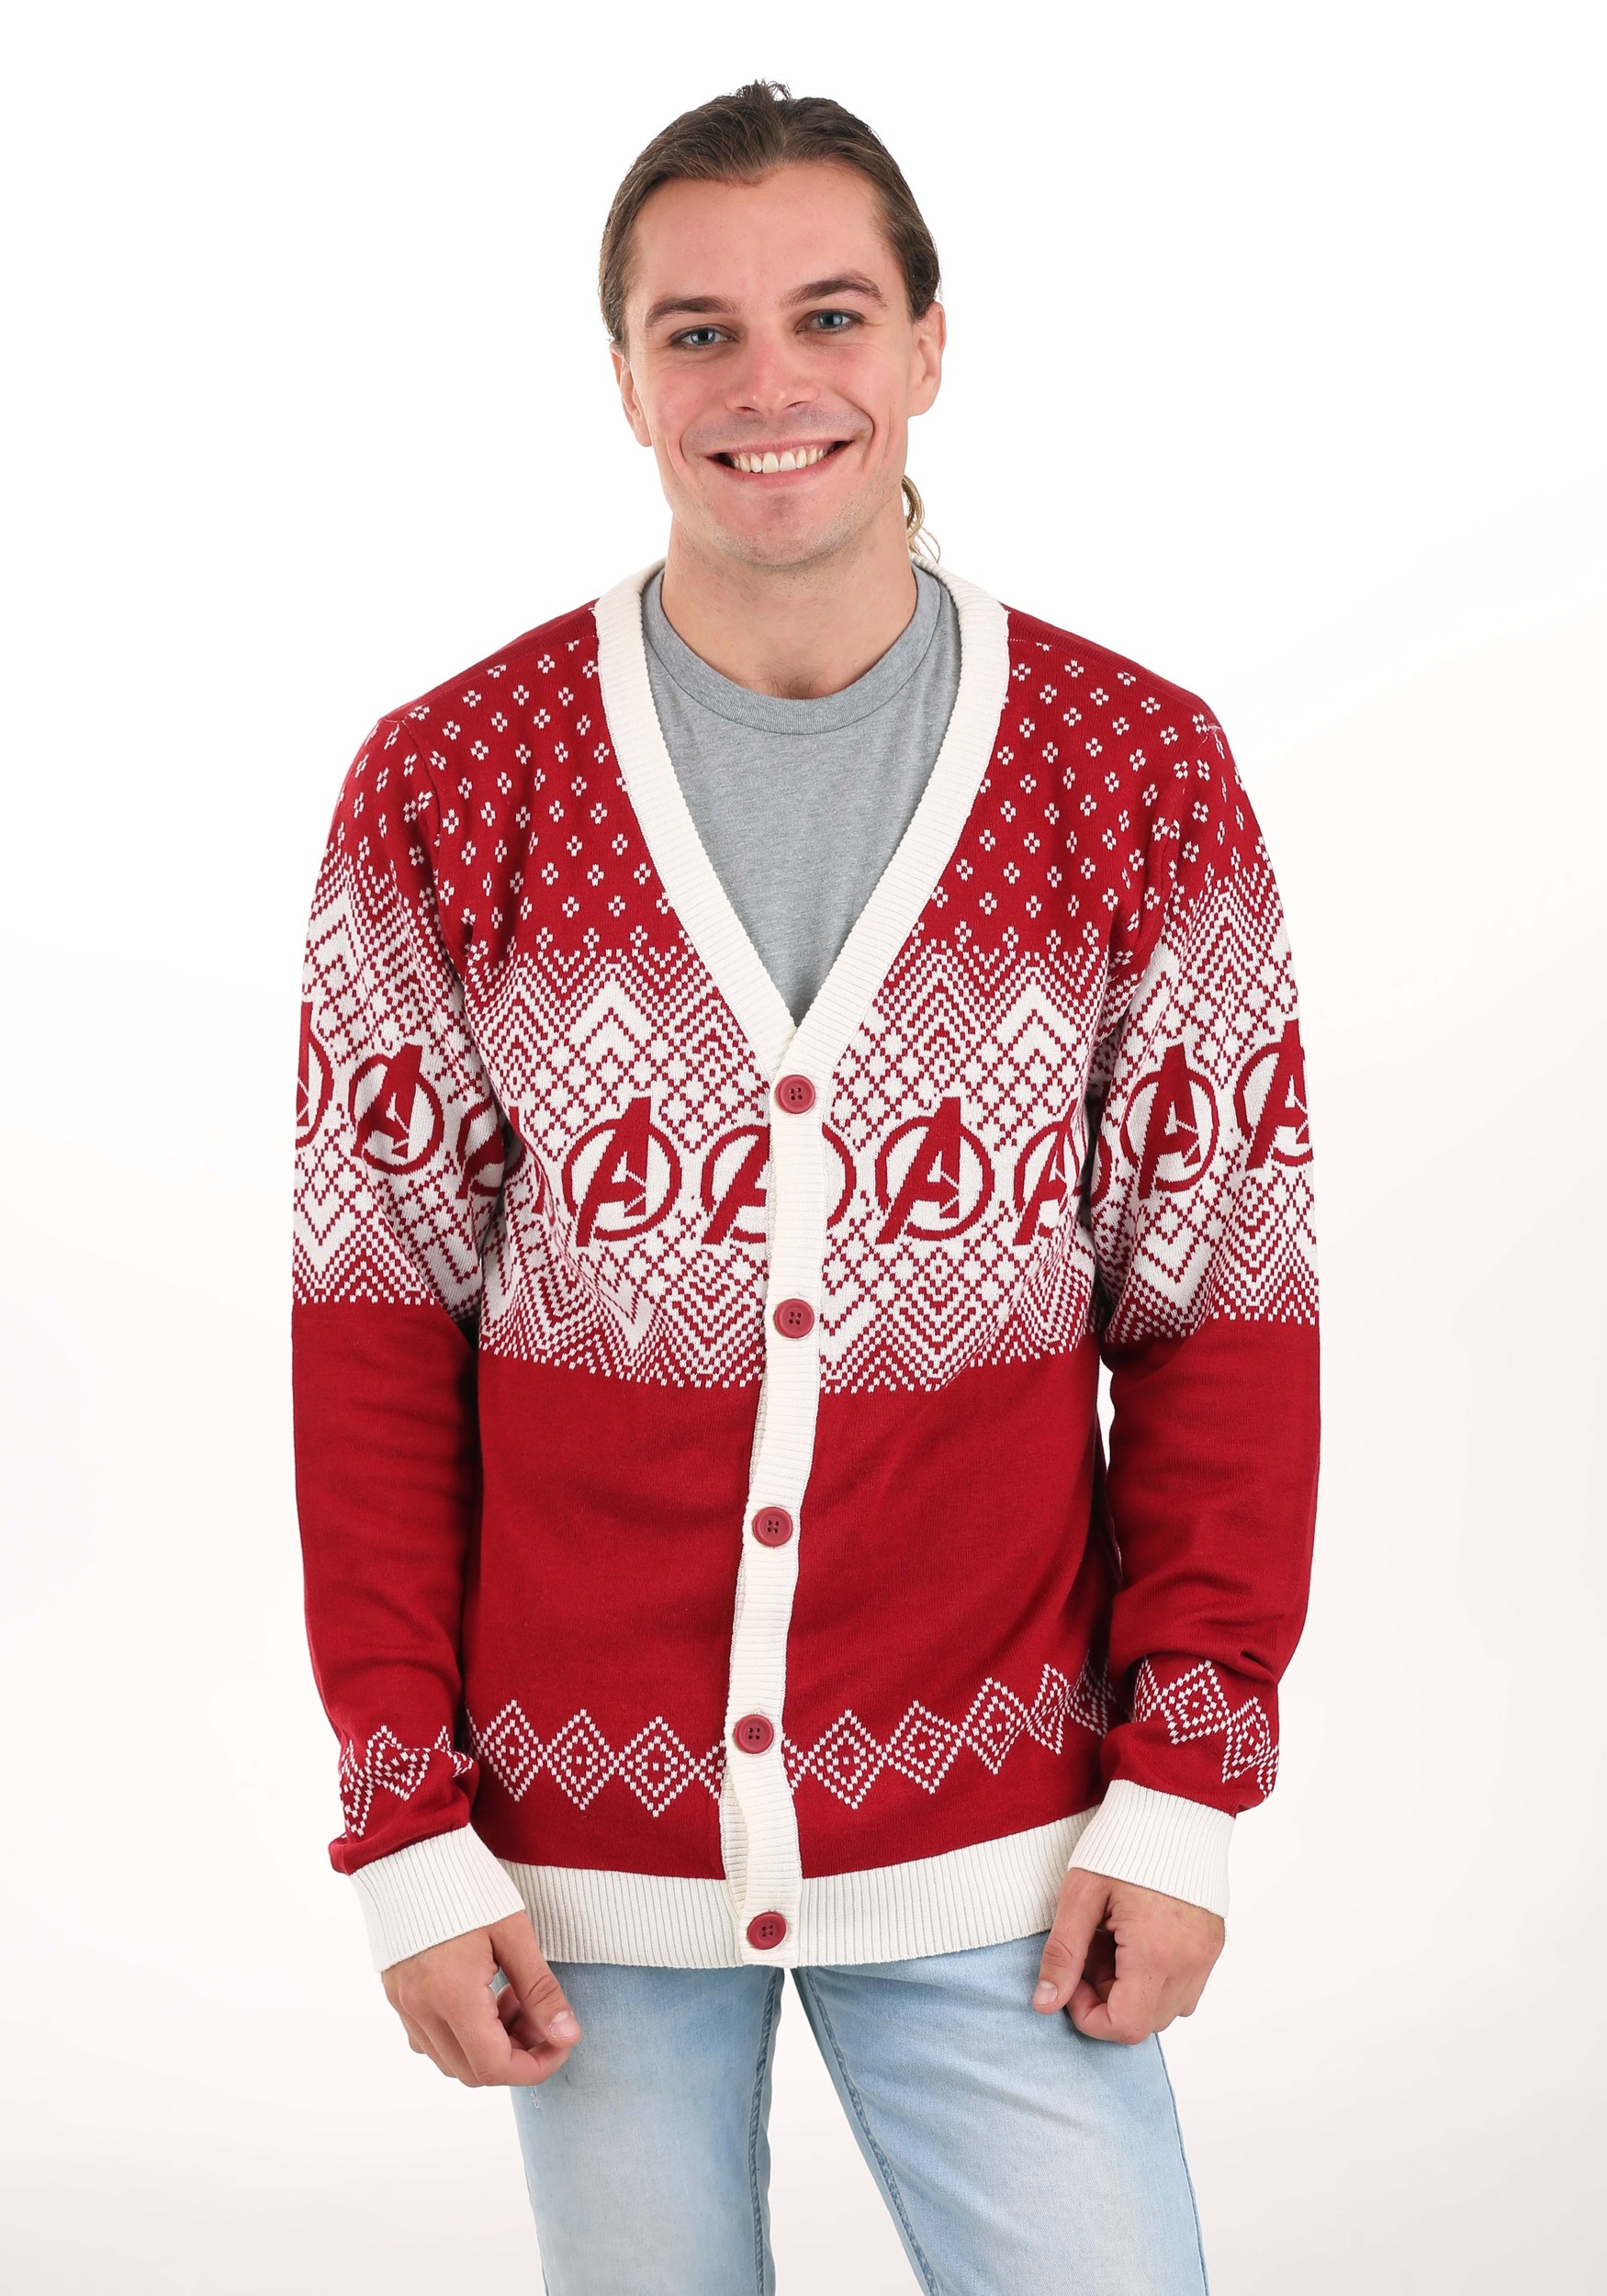 Marvel Avengers Adult Ugly Christmas Cardigan Sweater